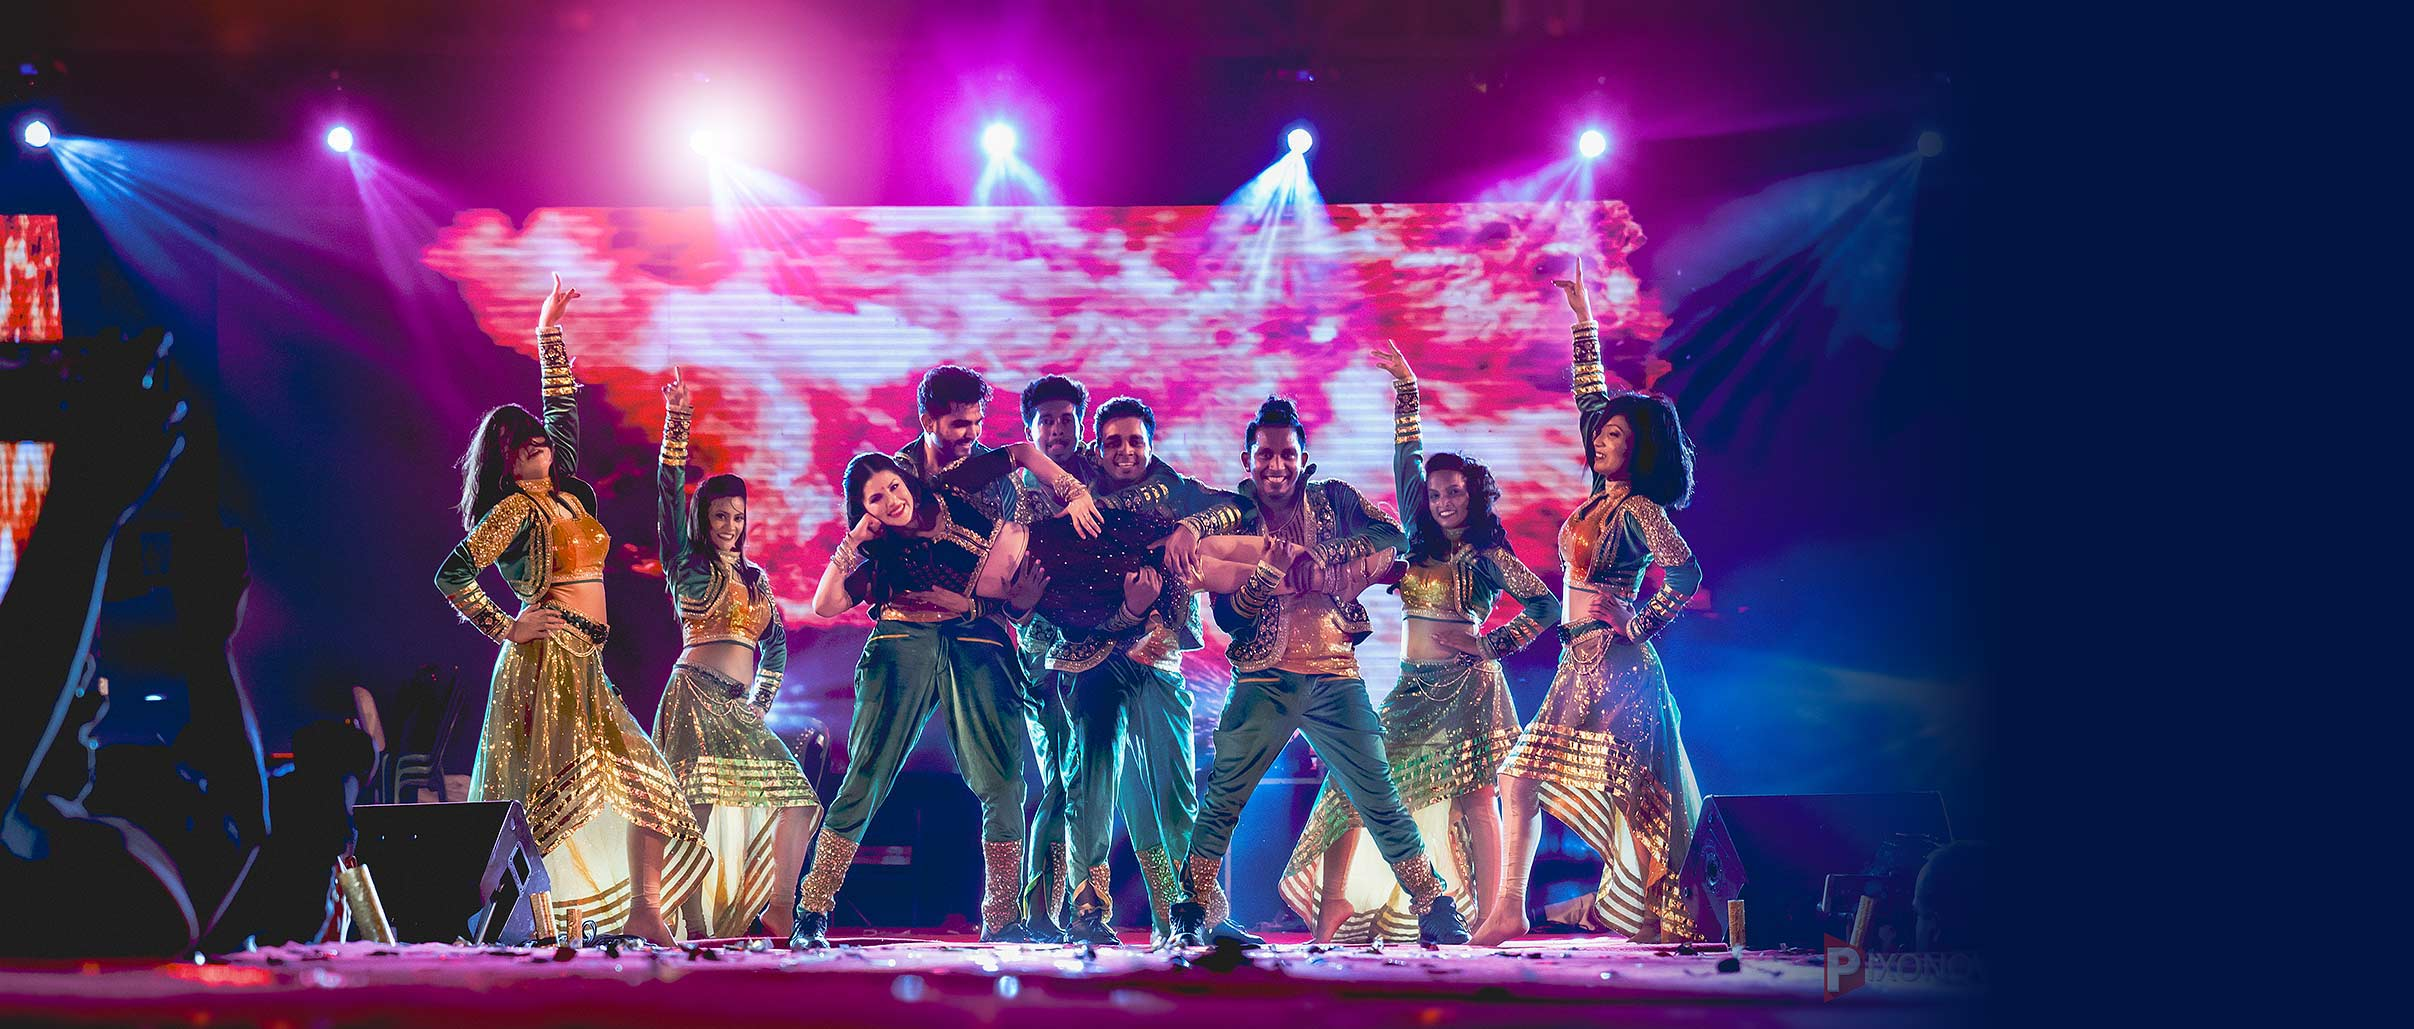 Sunny-Leone-full-stage-with-all-dancers-by-pixonova-event-photographer